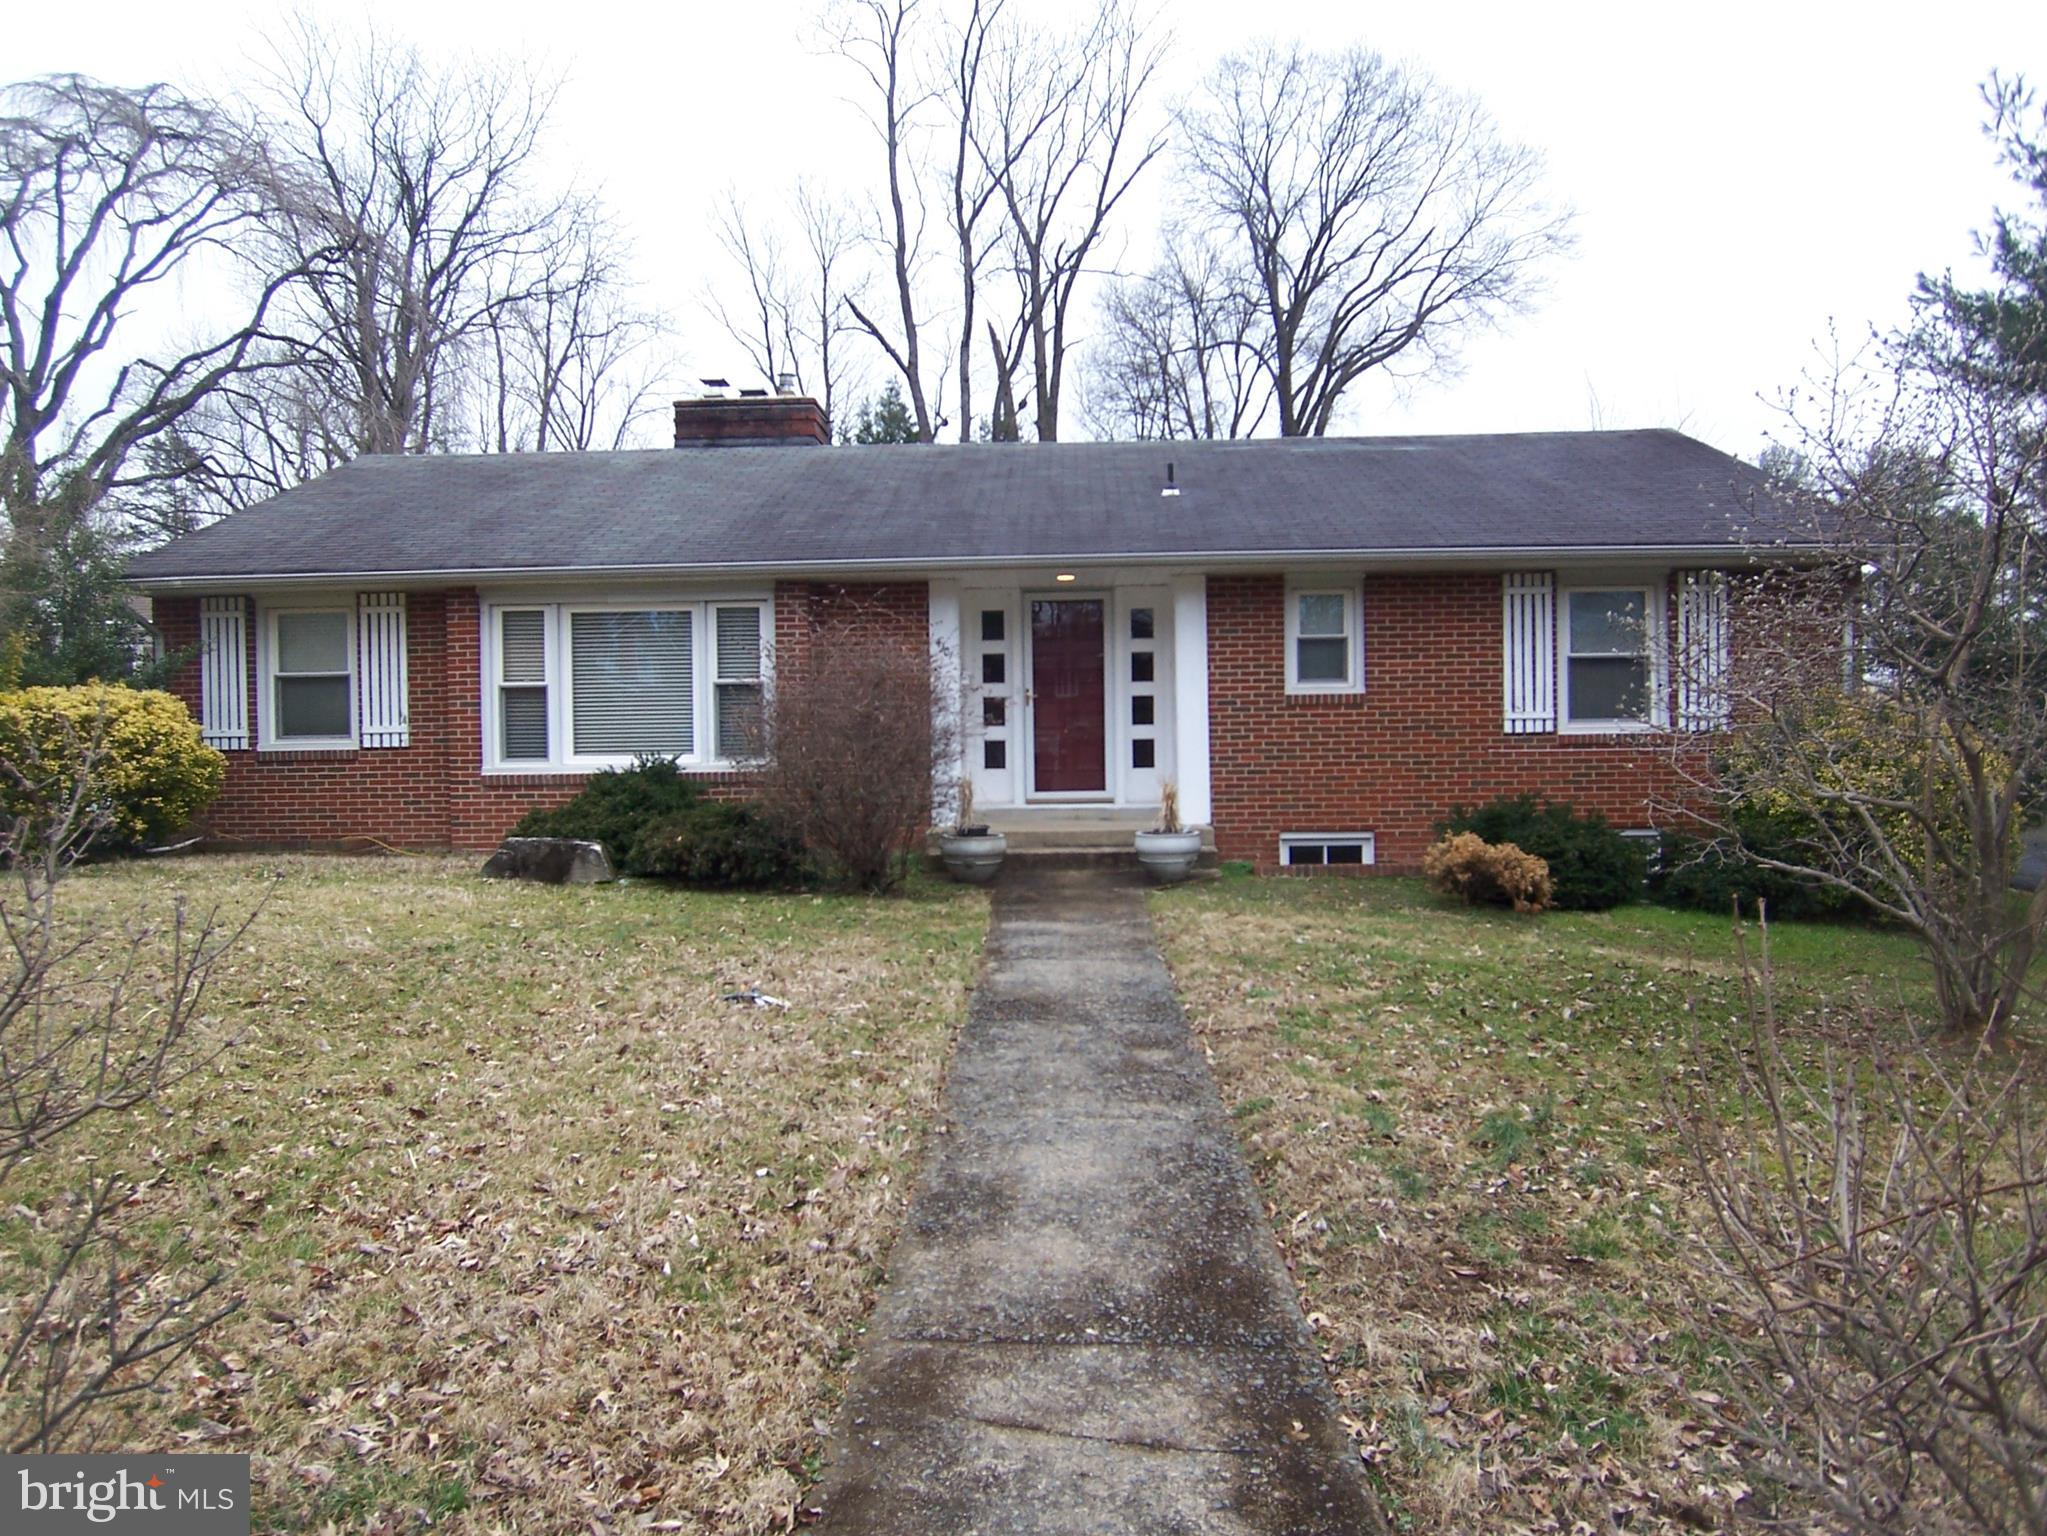 Classic large Rambler updated and remodeled with new kitchen 2019. Home boasts 3 large bedrooms, 3 baths, living room w/fireplace, Sun porch addition, and all hardwood floors upstairs. roomy 2 car attached garage. Stone patio in rear. Finished basement with wet bar, built-ins, recess/indirect lighting, full bath and mud room at rear entrance. Huge laundry big enough for an exercise room with spare fridge, plus storage room. Efficient new 2018 furnace w/Nest. Great easy-access neighborhood yet very private.